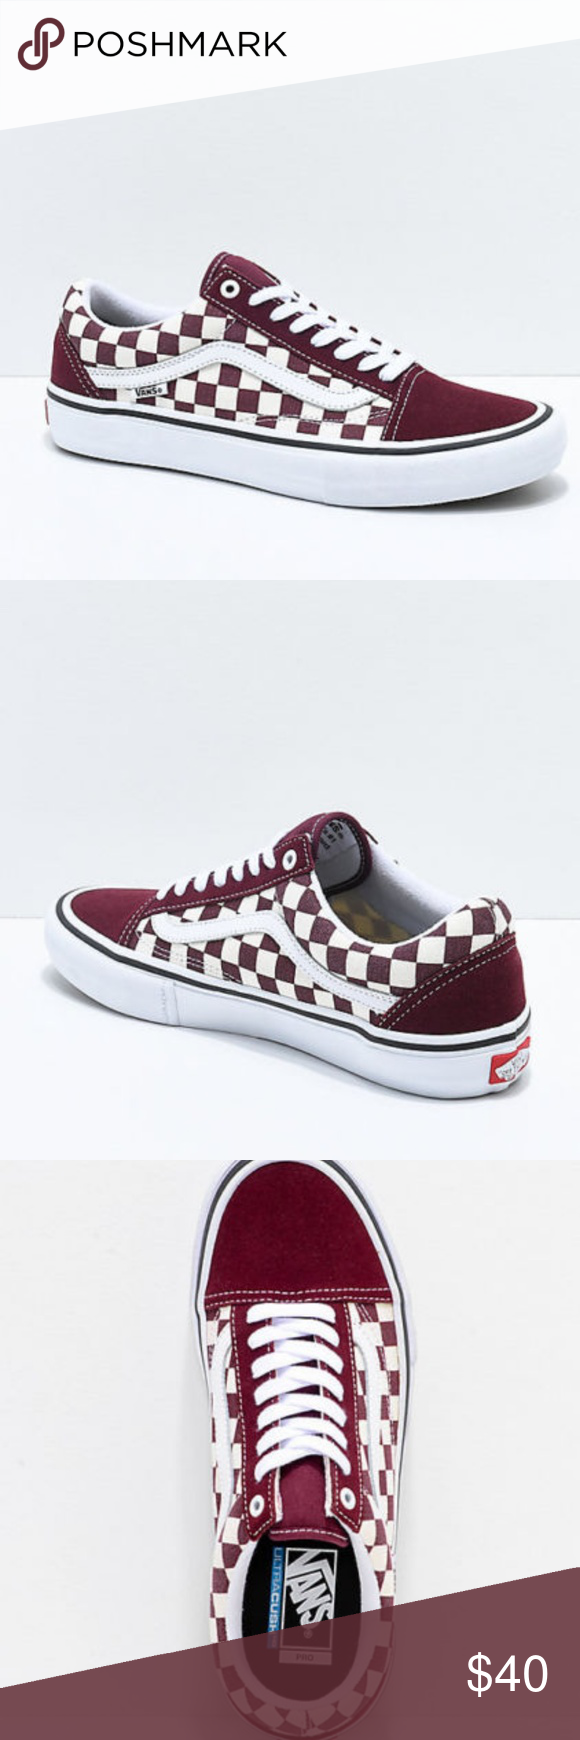 0a9c669ee60a4c Vans Old Skool Pro Port Royal   White Checkered Sk Vans Old Skool Pro Port  Royal   White Checkered Skate Shoes Men s 9 A classic look draped in a new  port ...